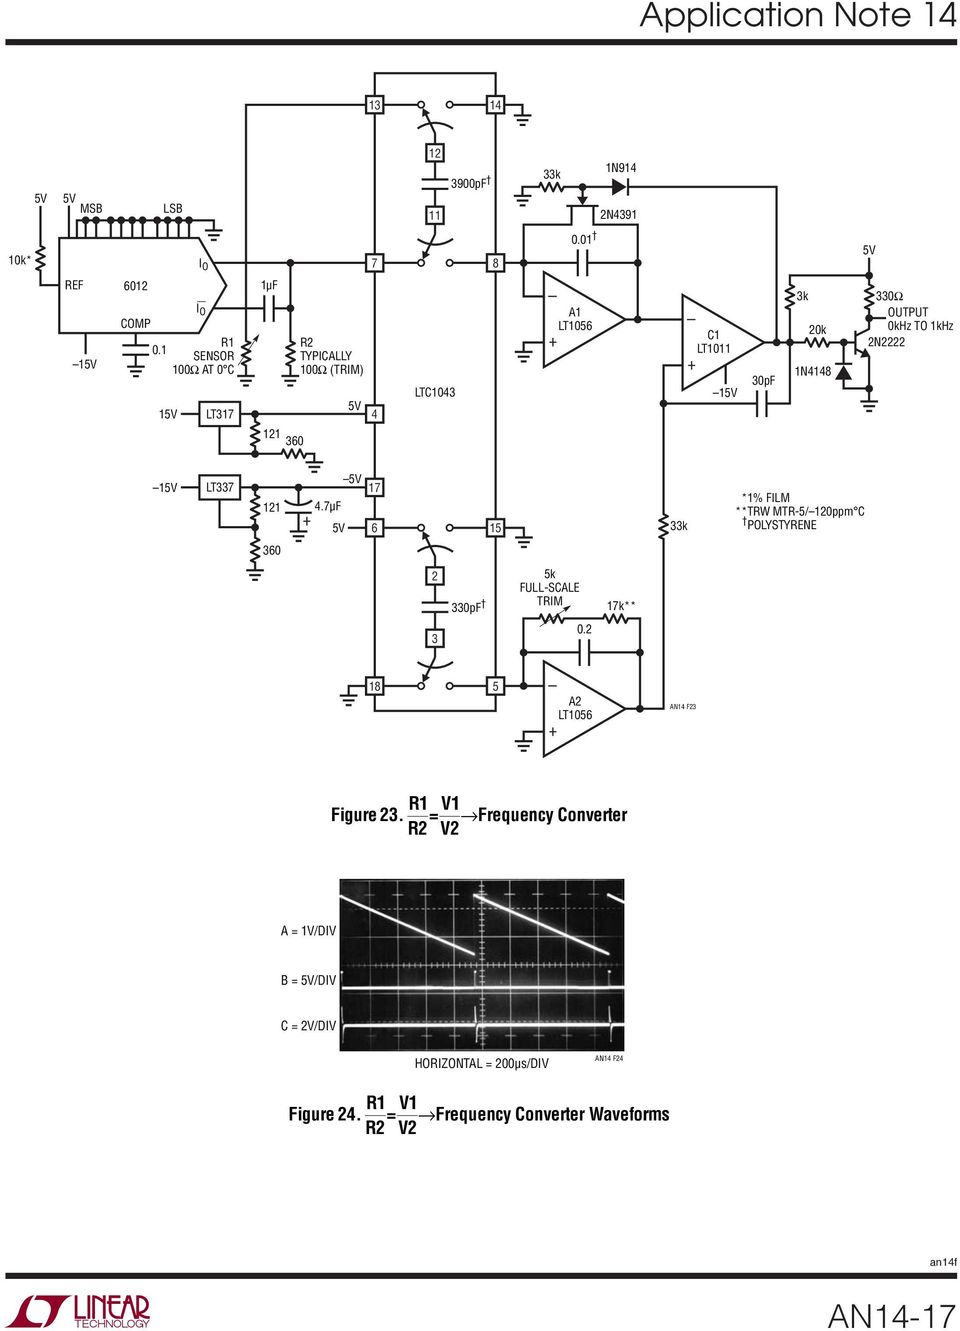 Designs For High Performance Voltage To Frequency Converters Pdf One Transistor Code Lock By 2n2222 2 360 Lt337 47f 7 6 5 33k Film Trw